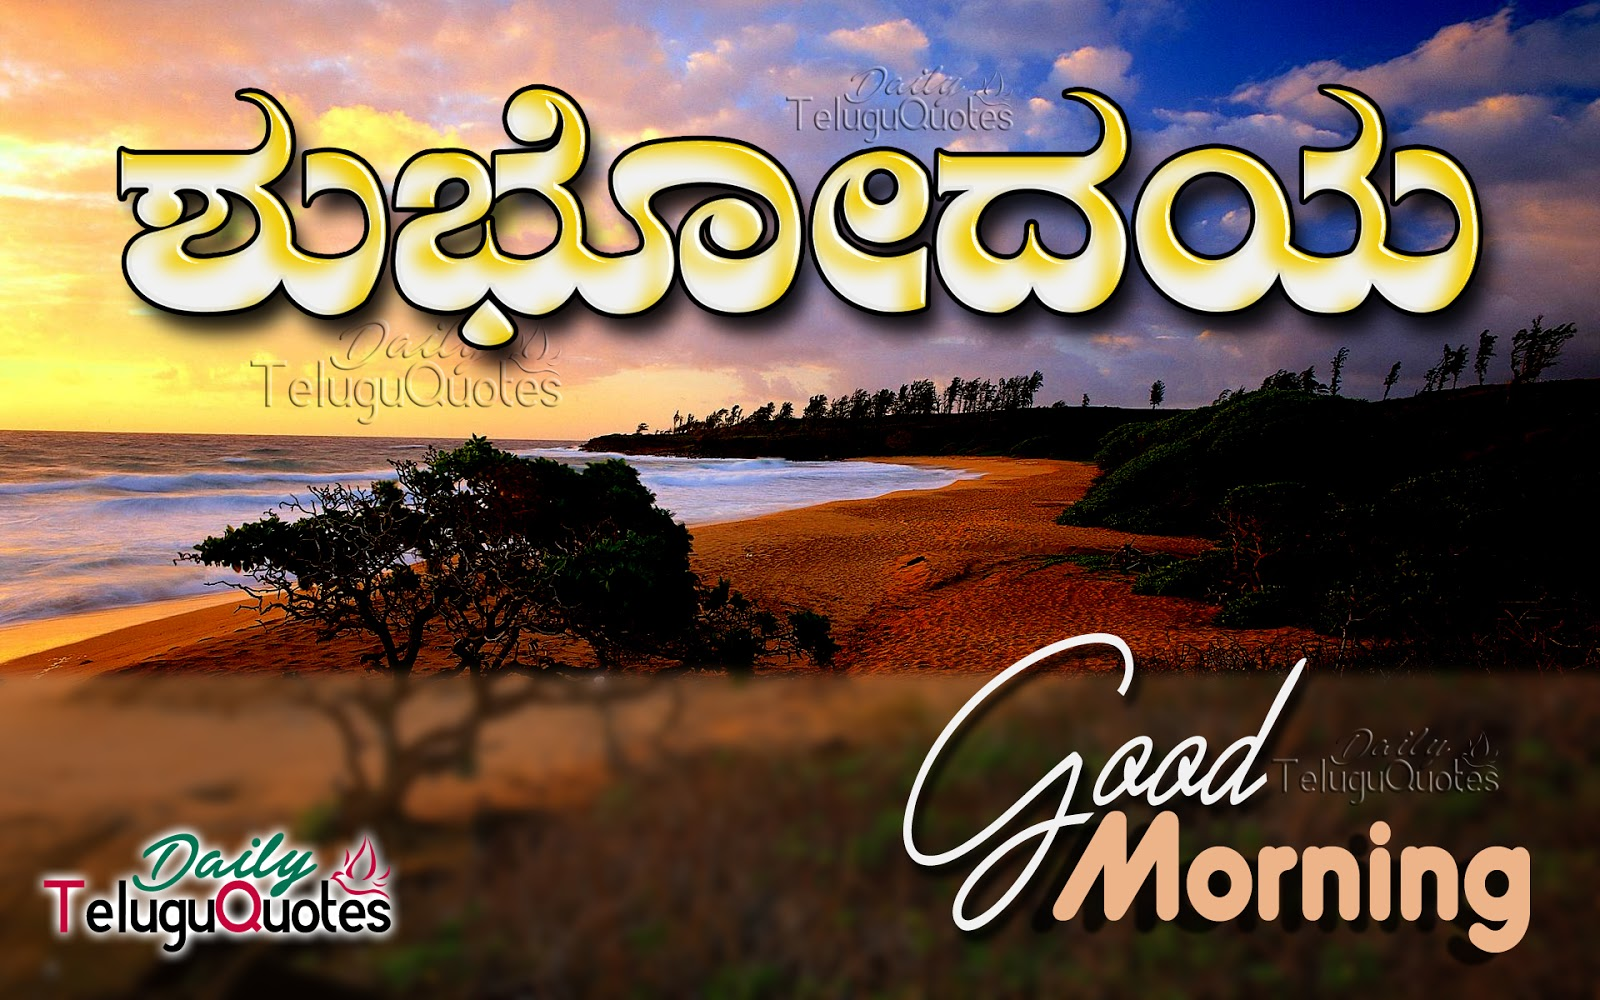 Best Kannada Good Morning Greetings Online Dailyteluguquotes